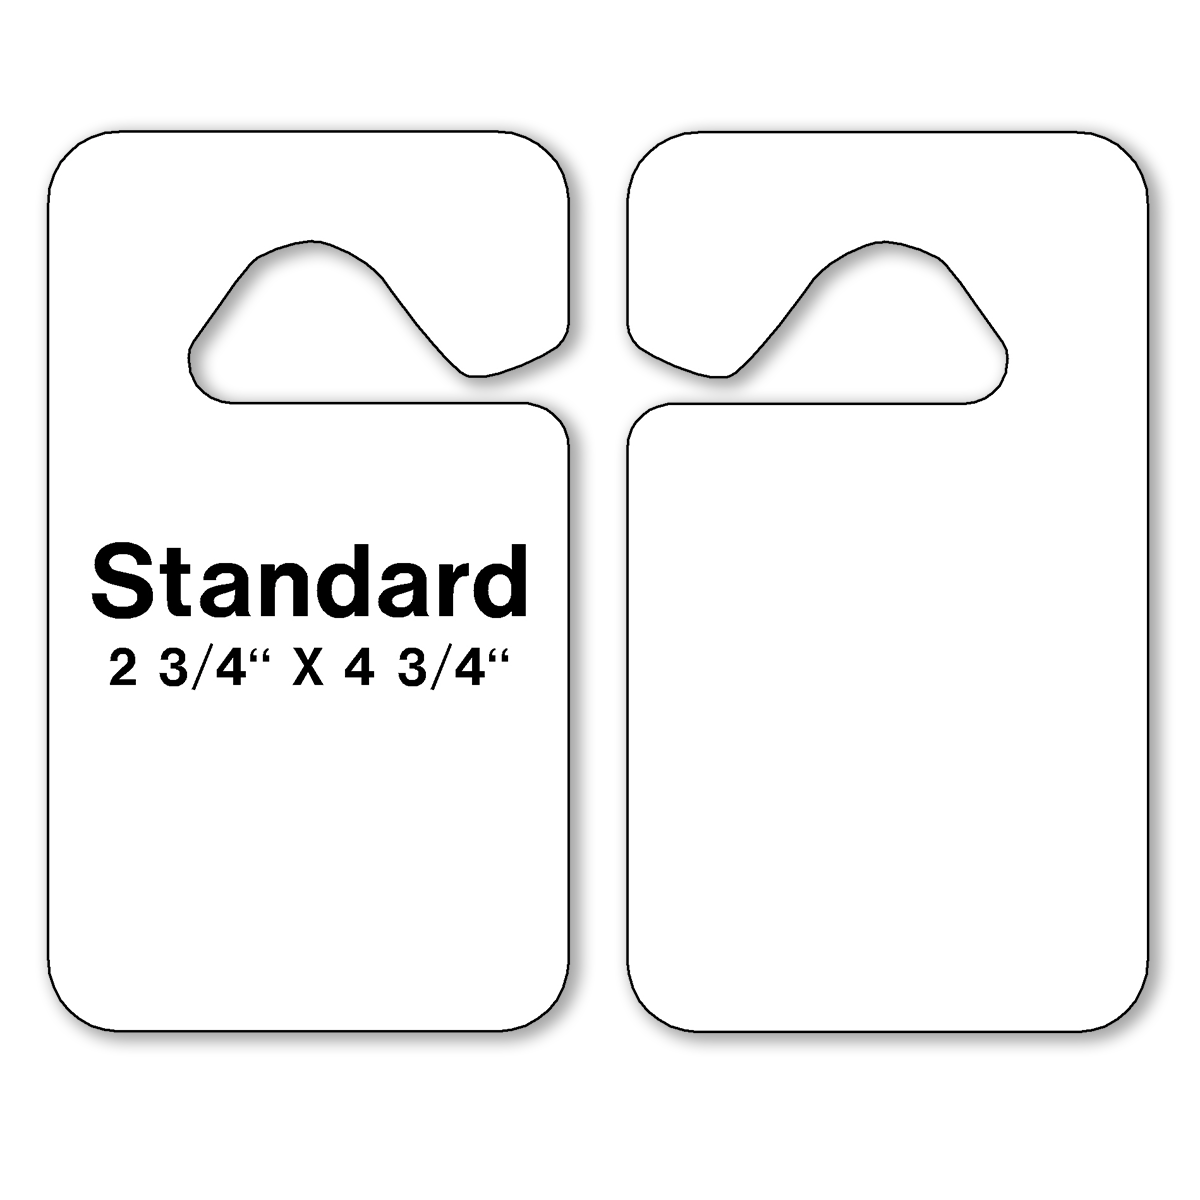 hanging parking pass template - blank parking permit hang tags buy parking hang tags bulk